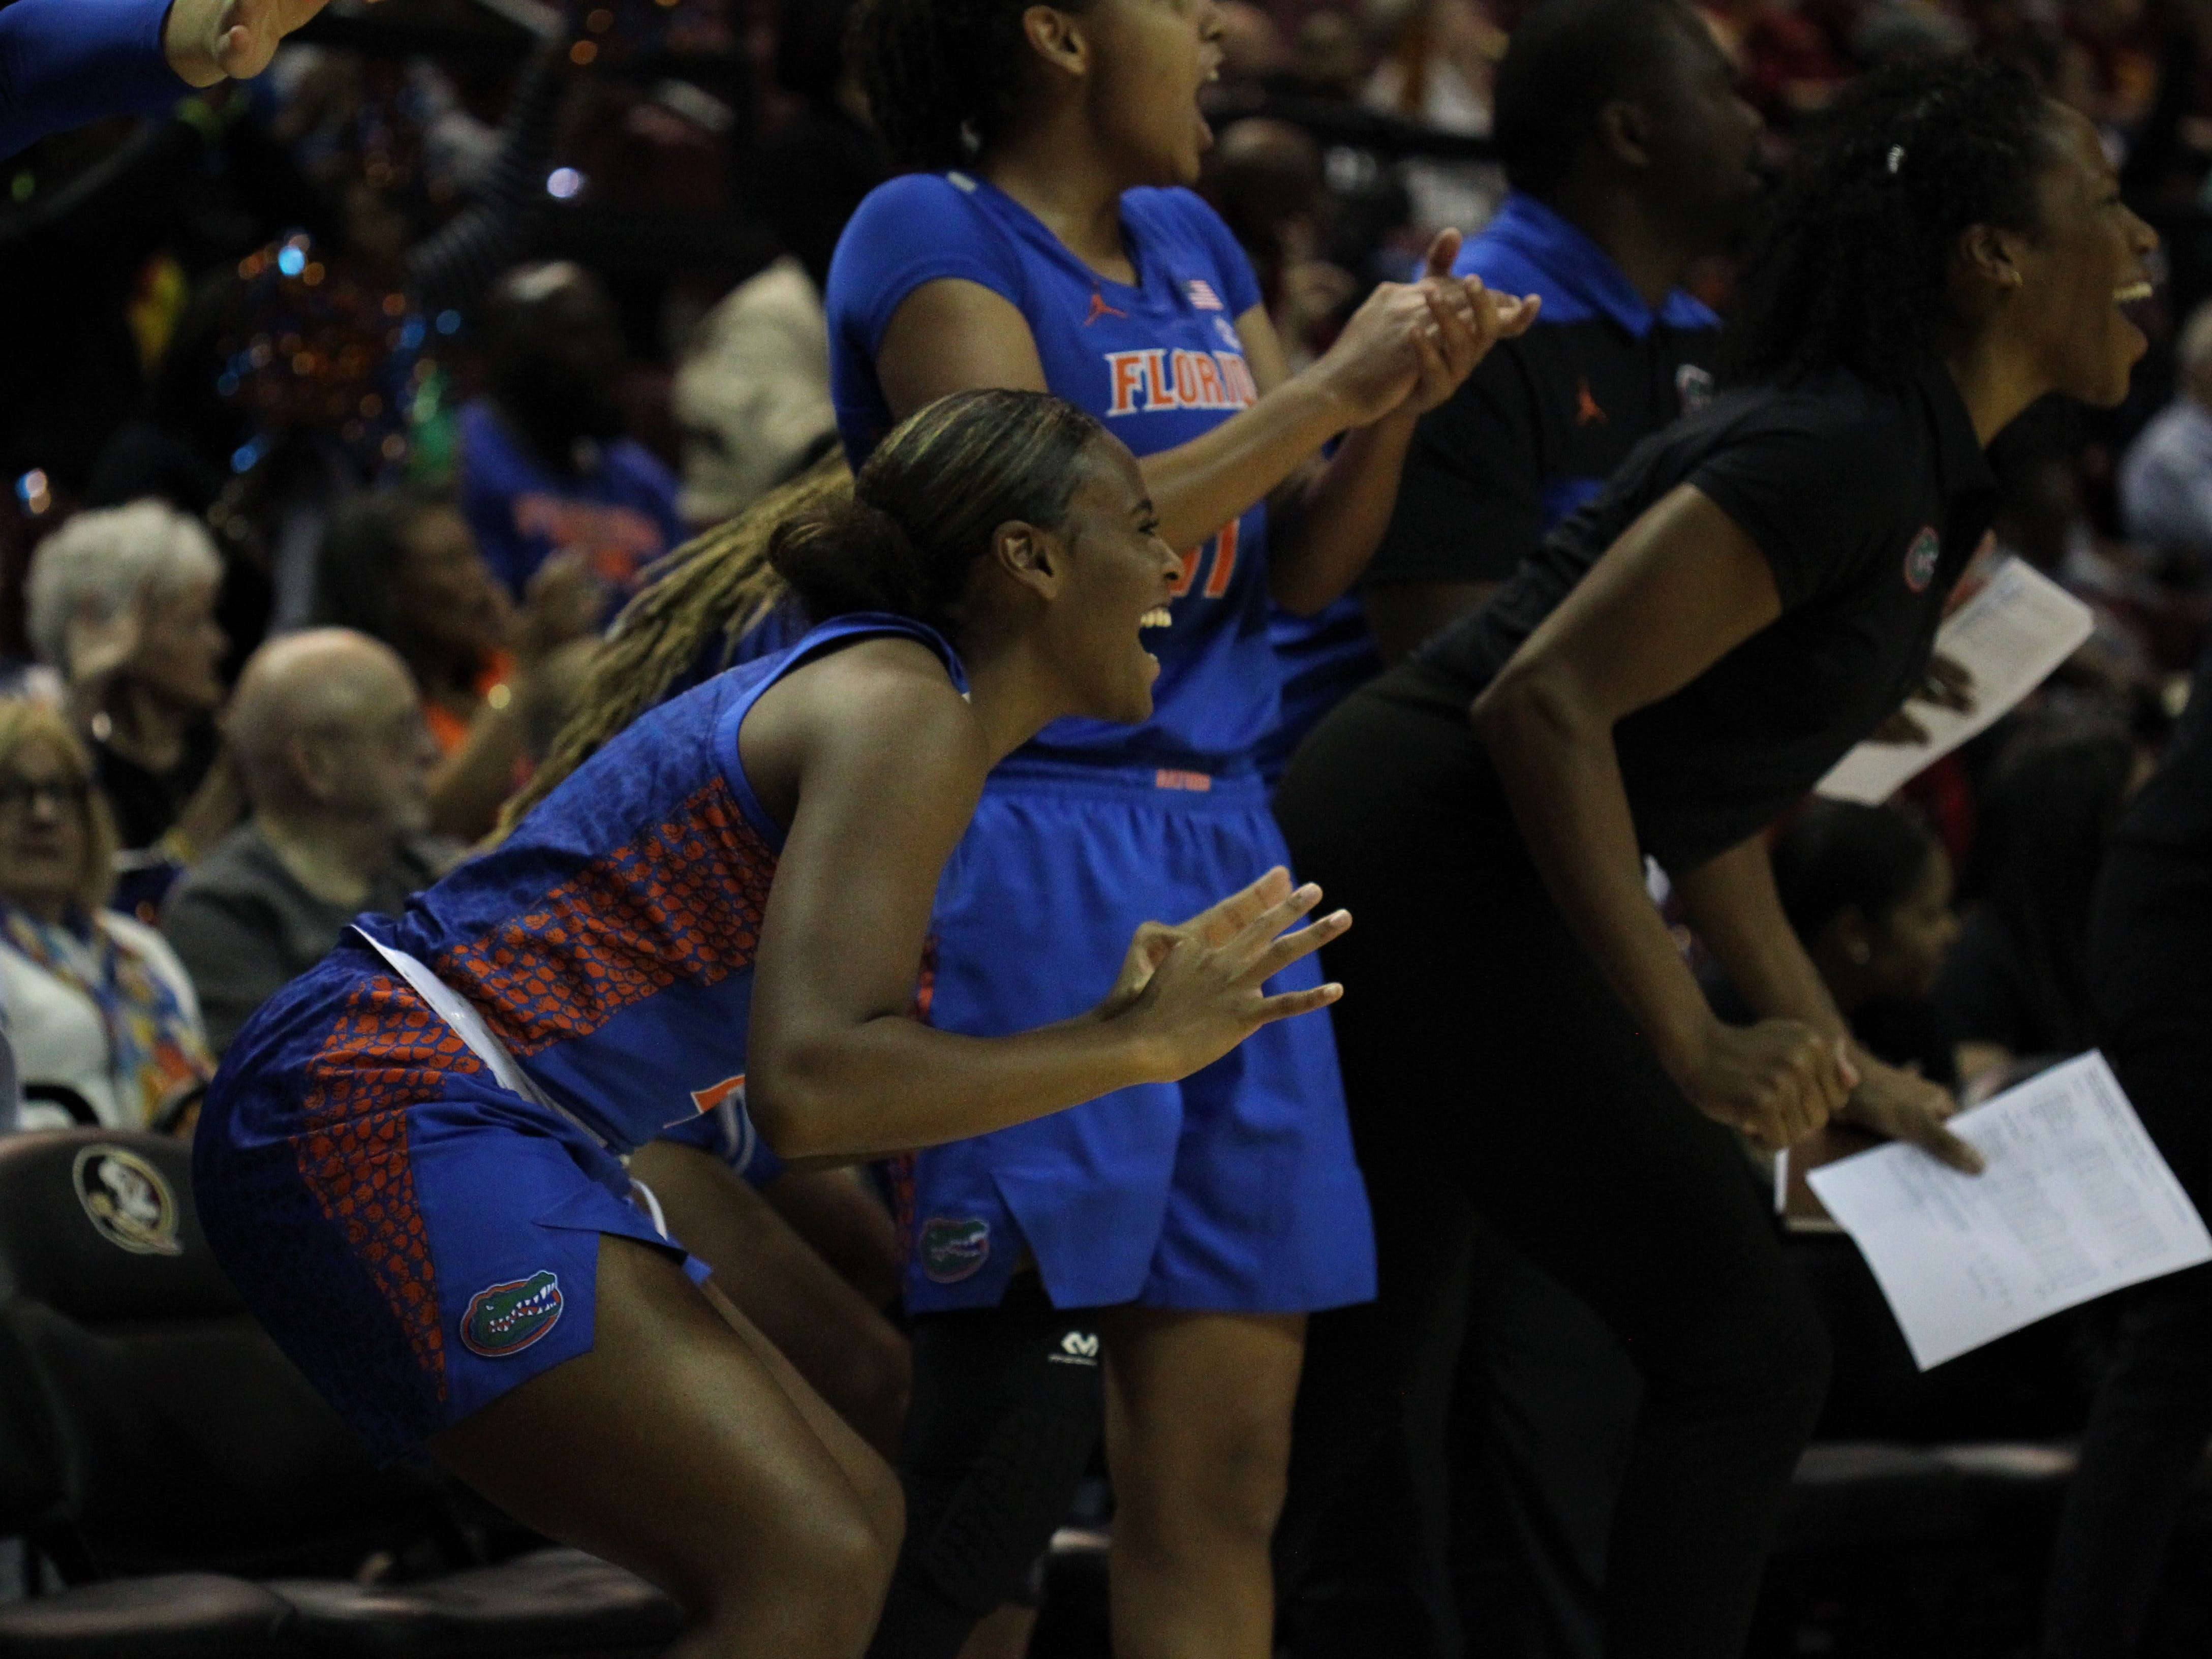 Florida players cheer a basket during the first half of a game against Florida State the Tucker Civic Center on Nov. 11, 2018.